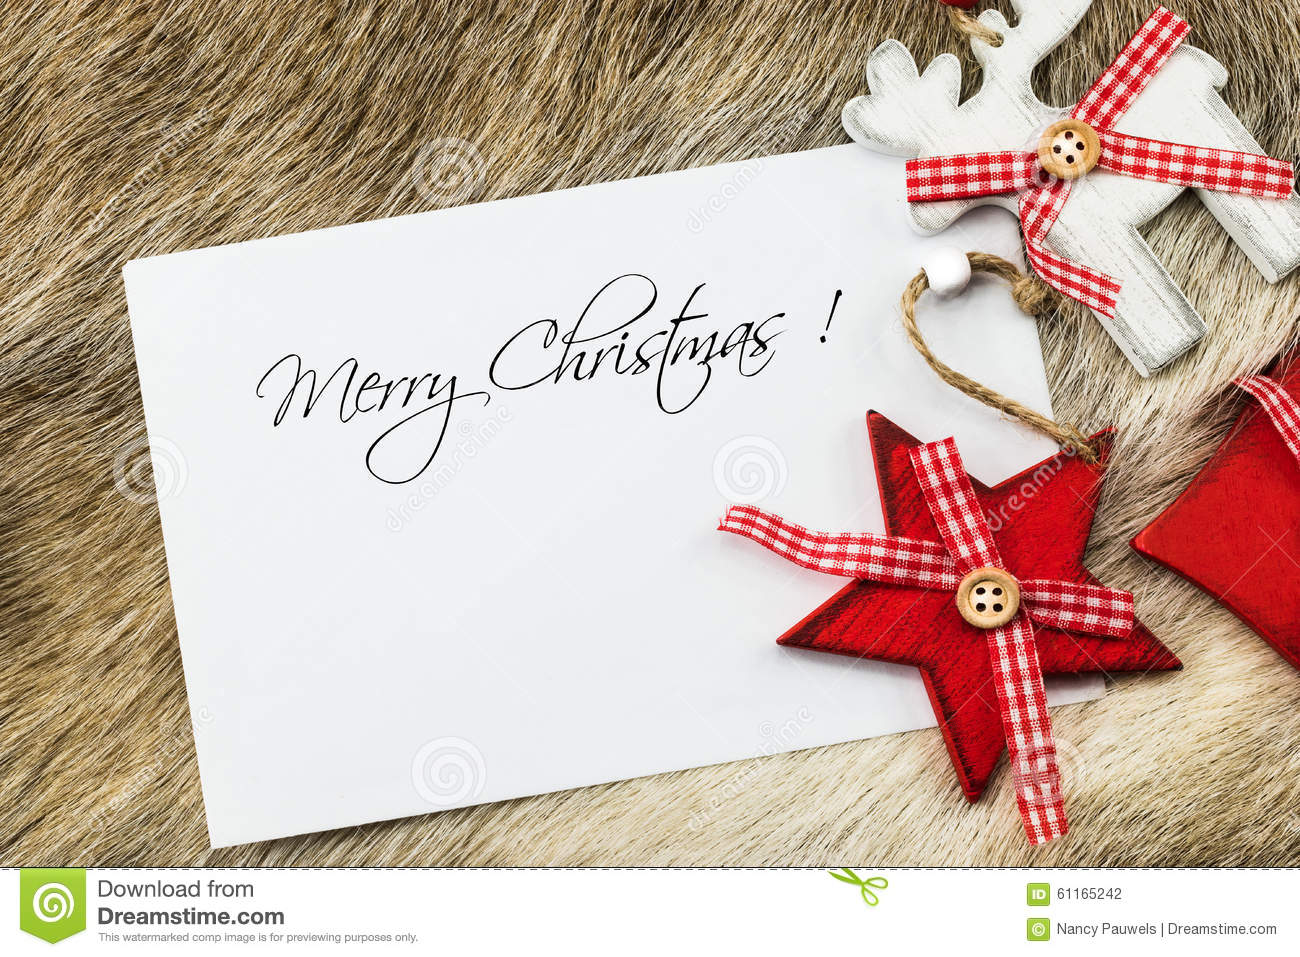 Holiday Background Or Greeting Card: Merry Christmas Wishes Card Stock Photo